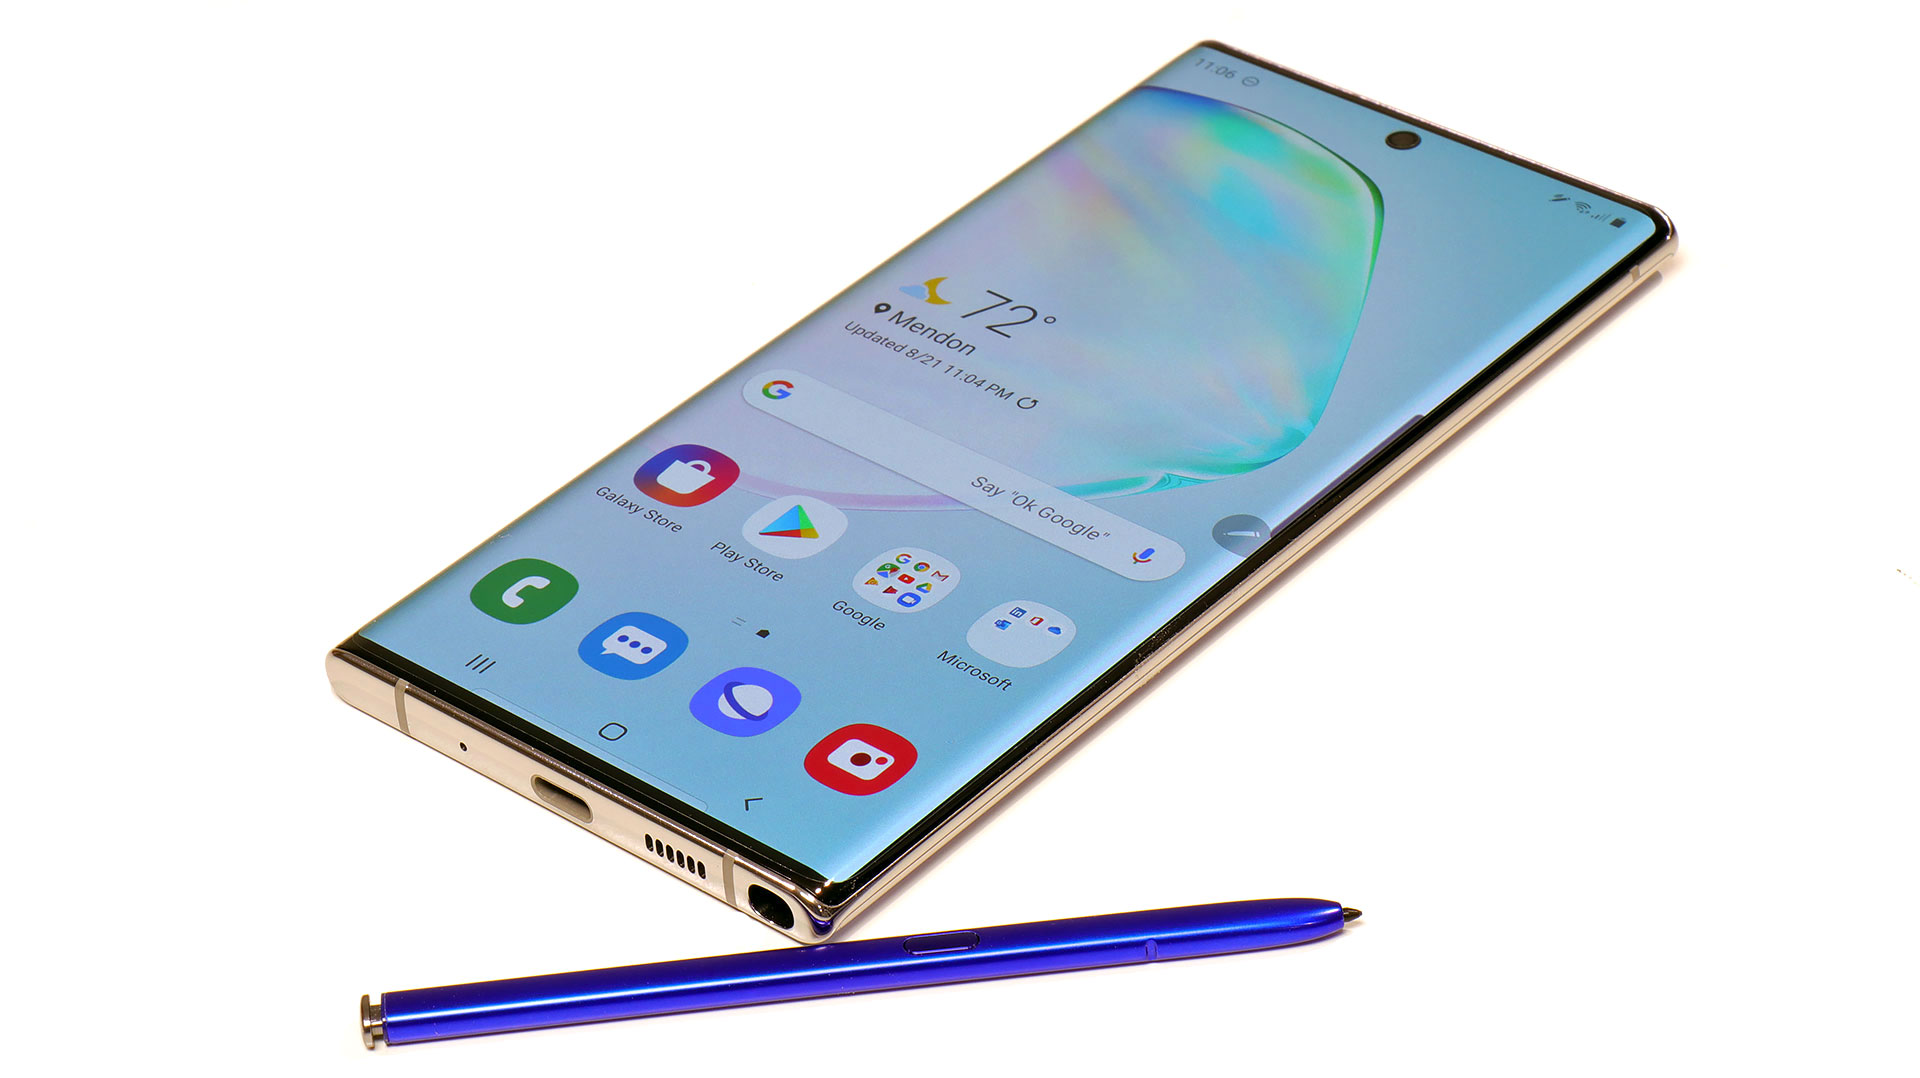 Samsung Galaxy Note 10 Plus Review: Power Of The Pen And Much More